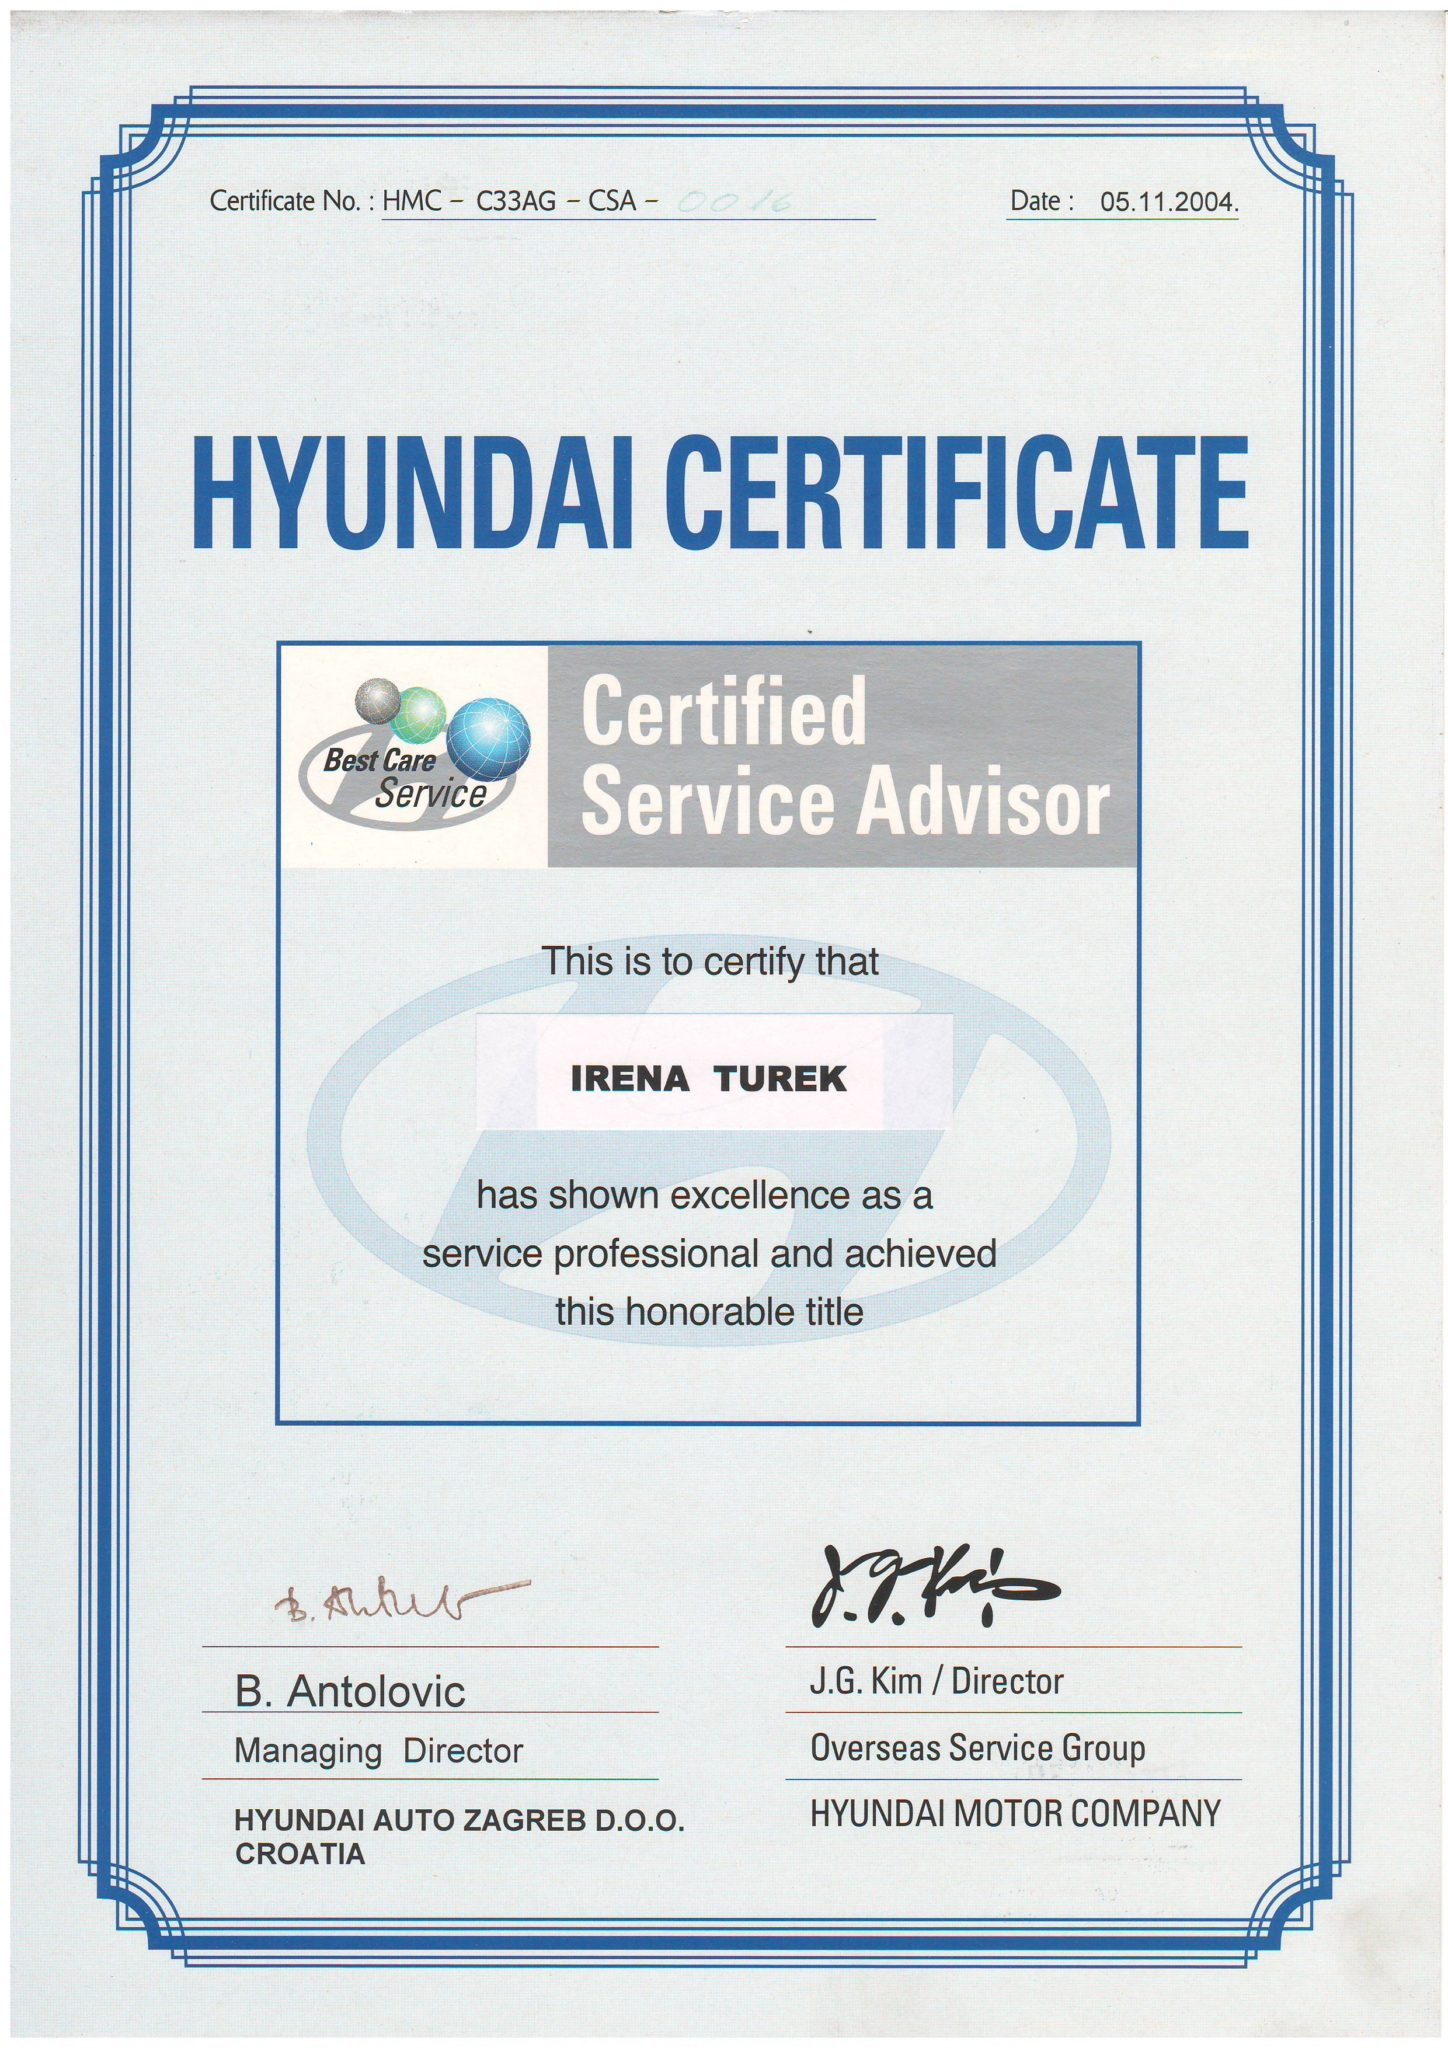 Picture of Hyundai - Certified servide advisor